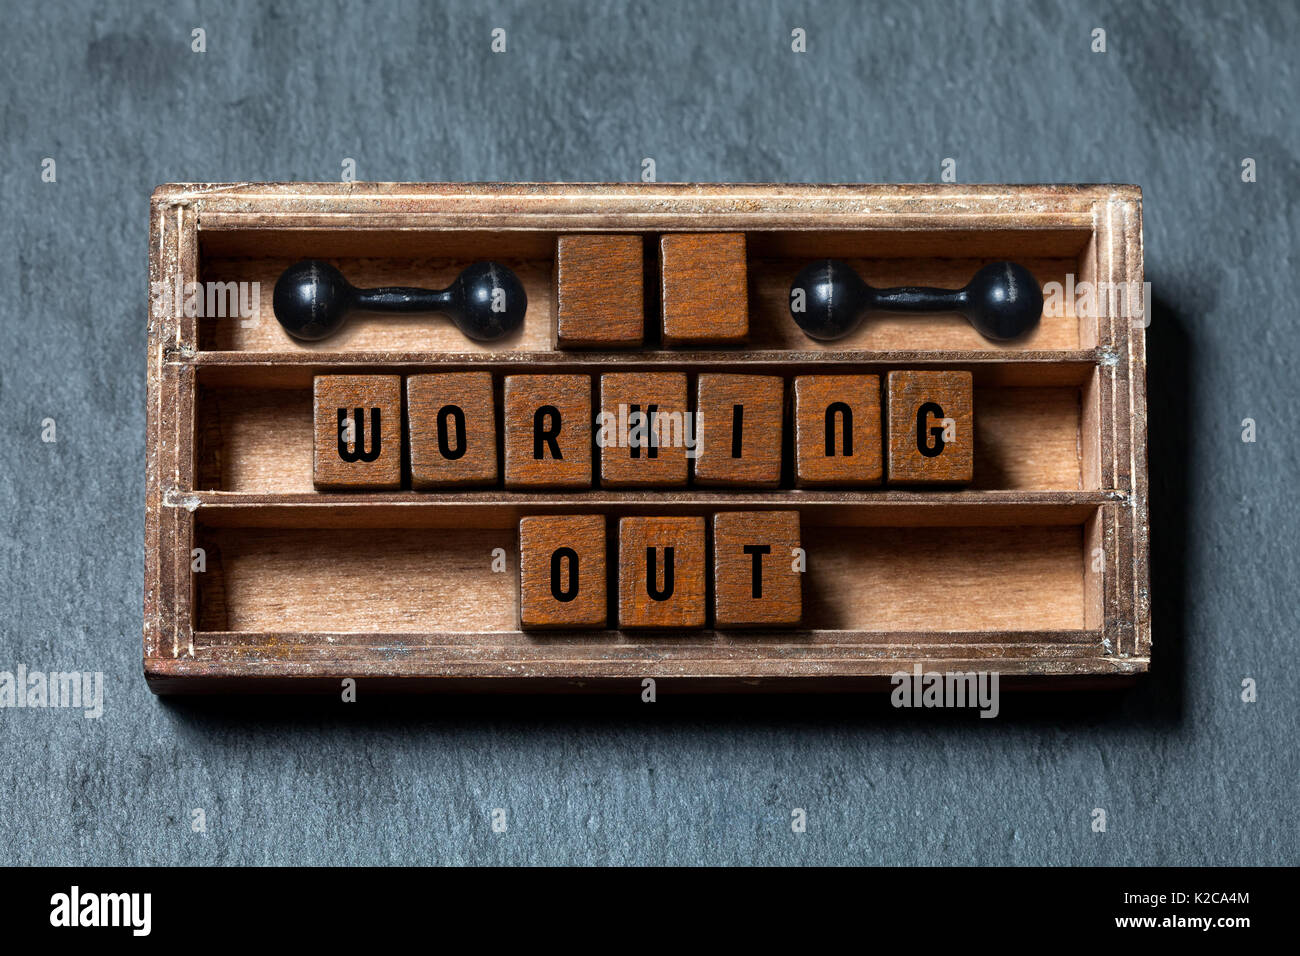 Working out gym concept heading. Aged box, wooden cubes with old style letters, black dumbbells. Gray stone textured background. Close-up, up view, soft focus. - Stock Image